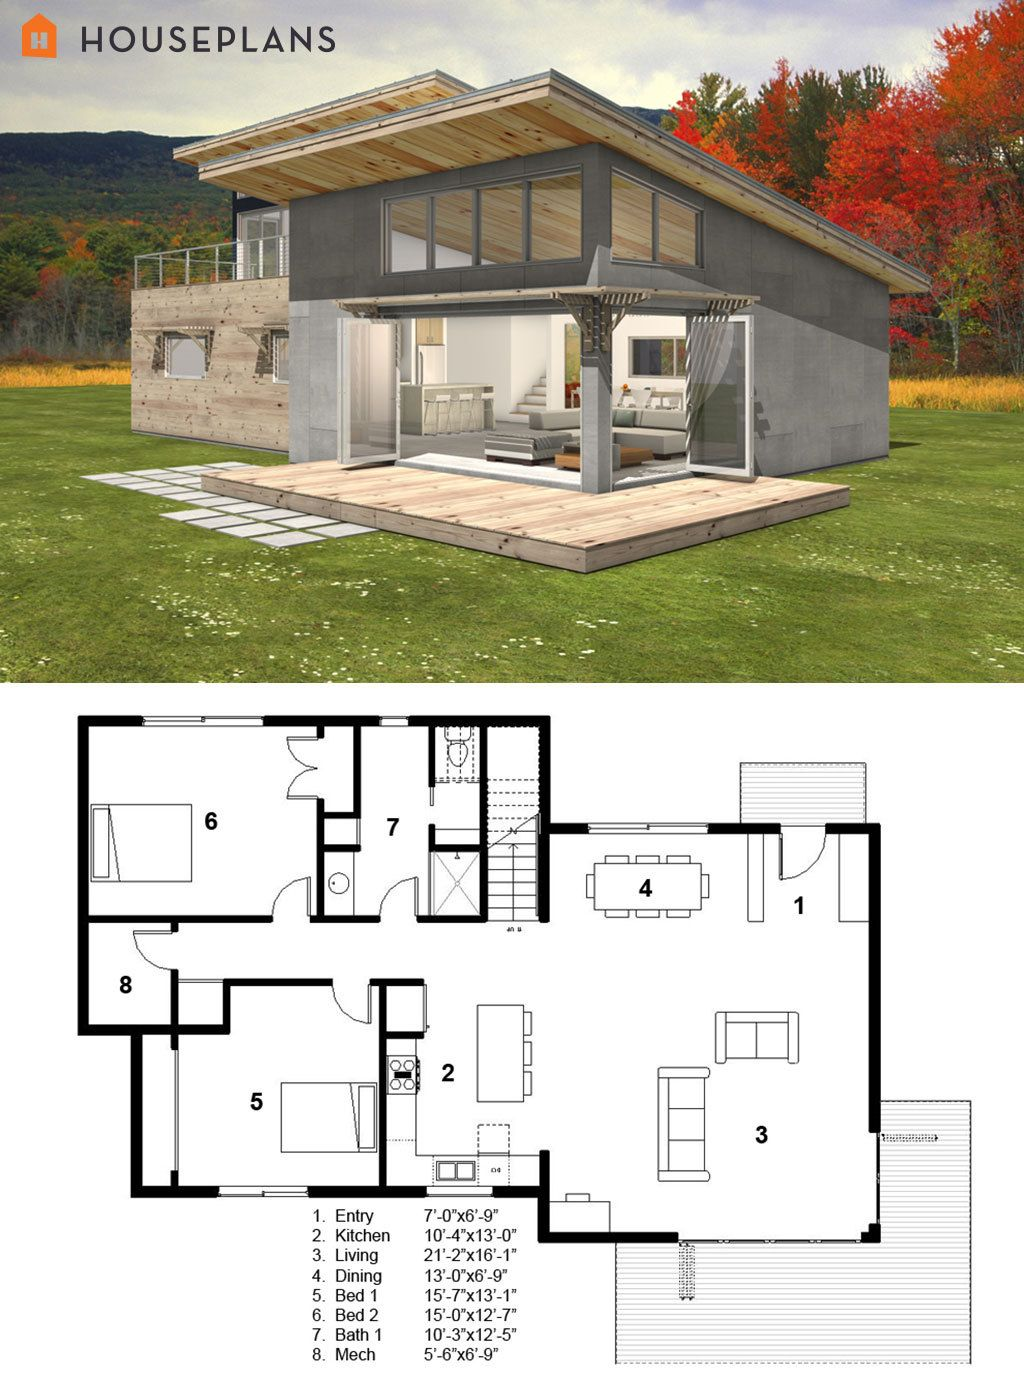 Small modern cabin house plan by freegreen energy for Free house plans and designs with cost to build